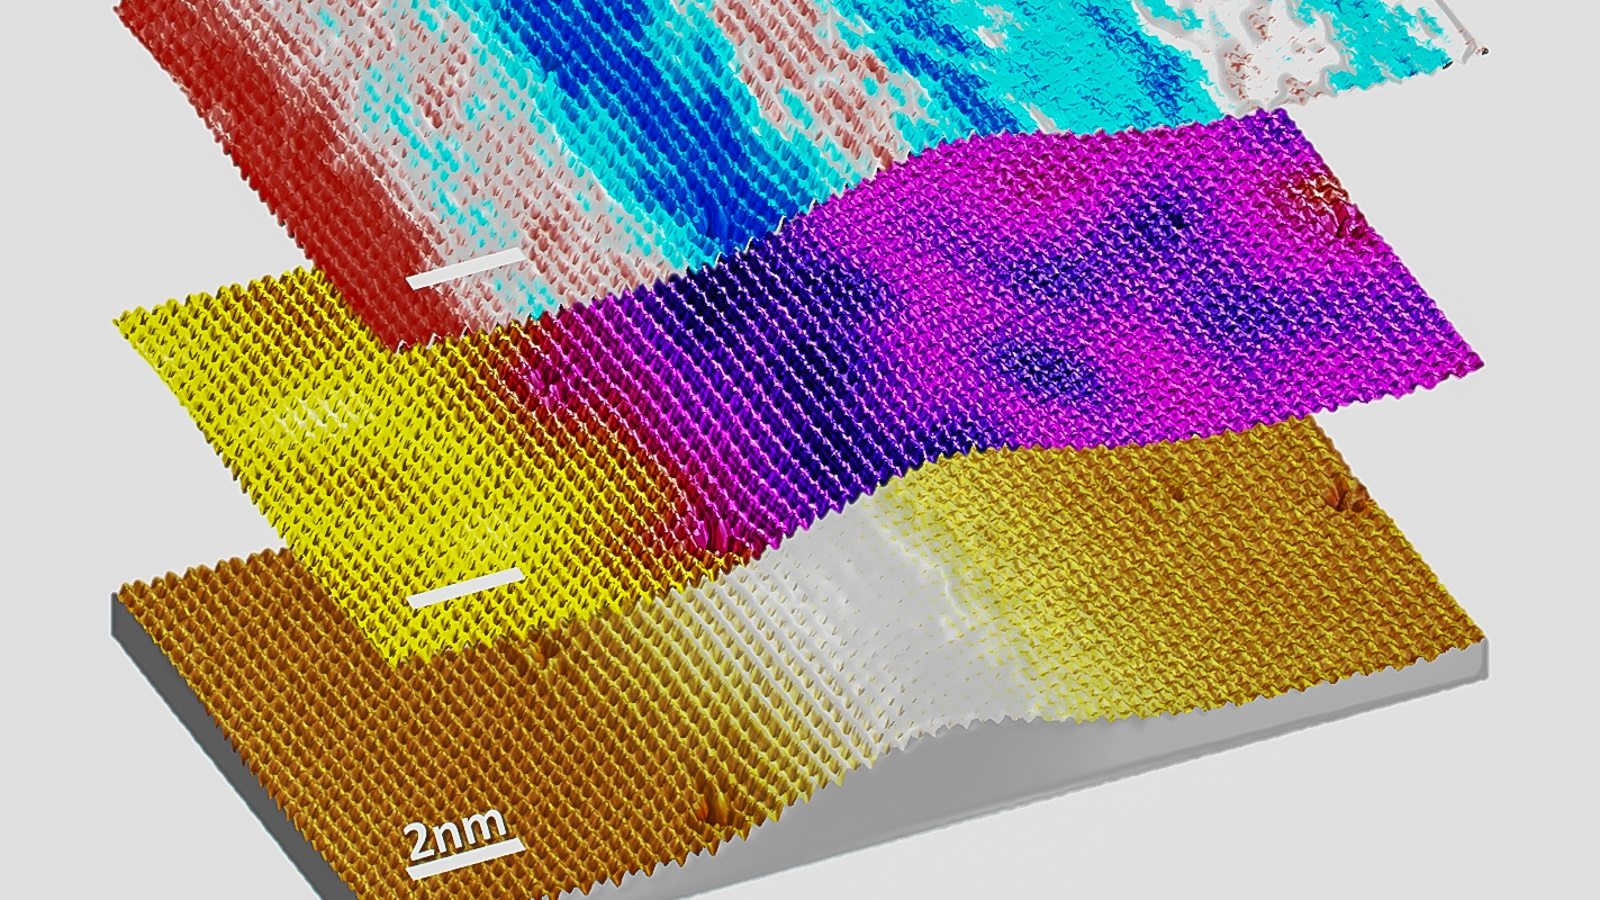 Scanning tunneling microscopy topography of a rippled MoS2 single layer as a result of strain relaxation (bottom). The corresponding dI/dV map at the valence band edge (middle), and the strain map (top) are overlaid.